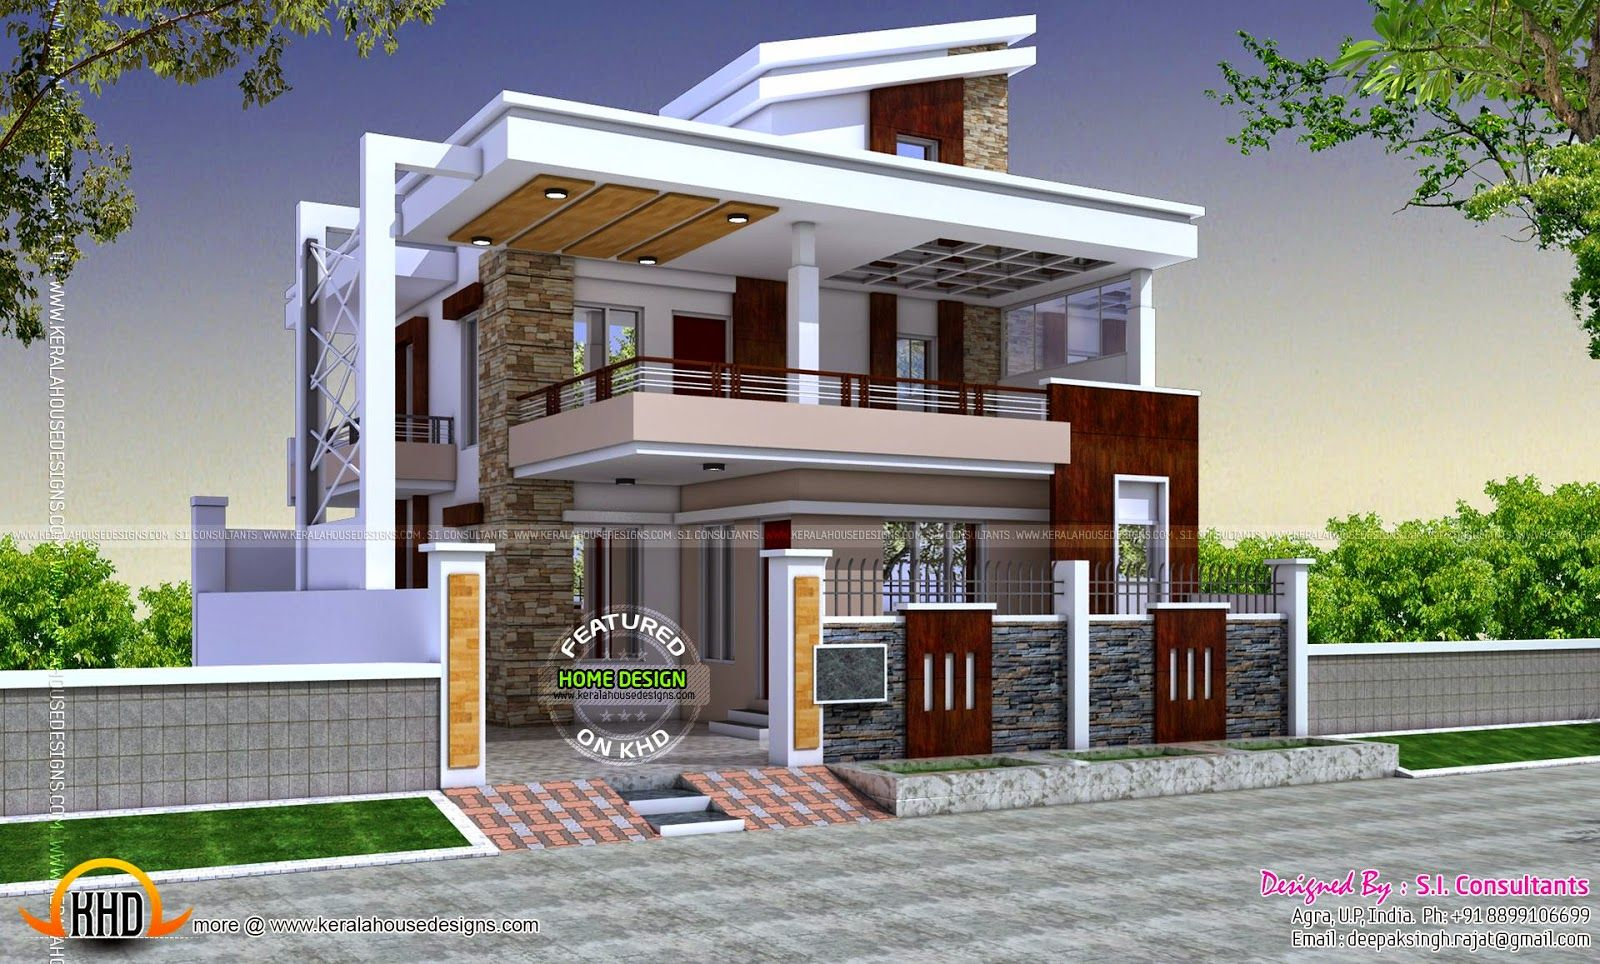 d03af665dee571a9dcf79ac2086cb7bf latest home plans and designs in india modern home design photos on latest exterior house - Home Exterior Designer